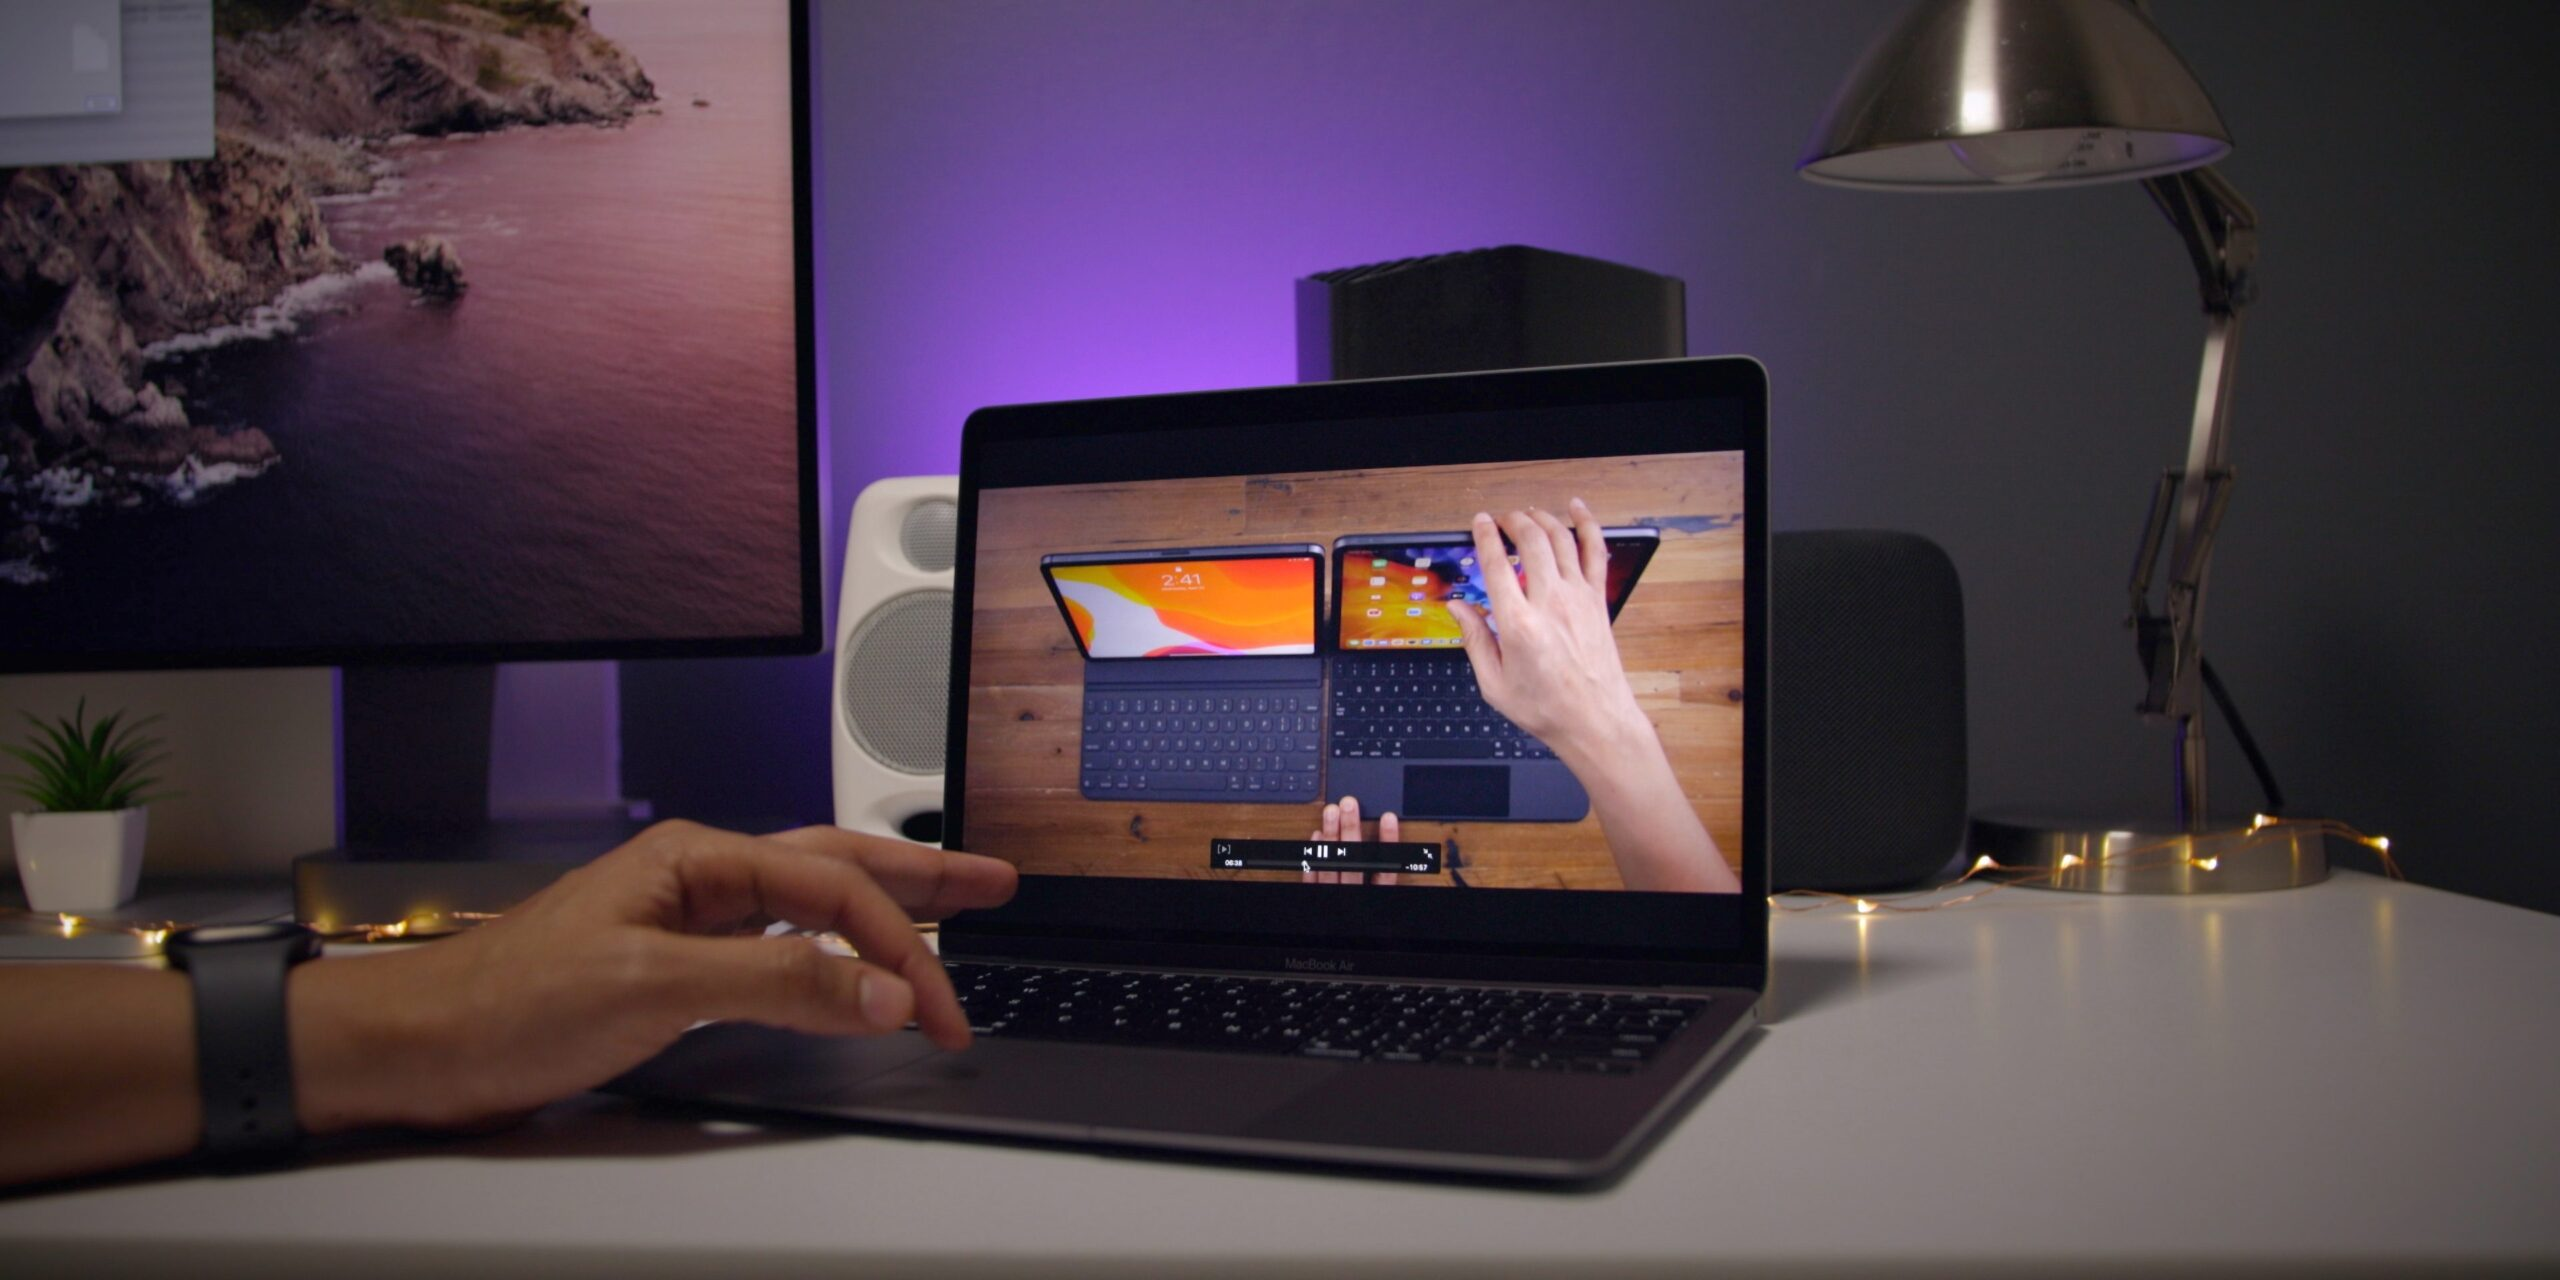 Best Laptop for College Video Editing